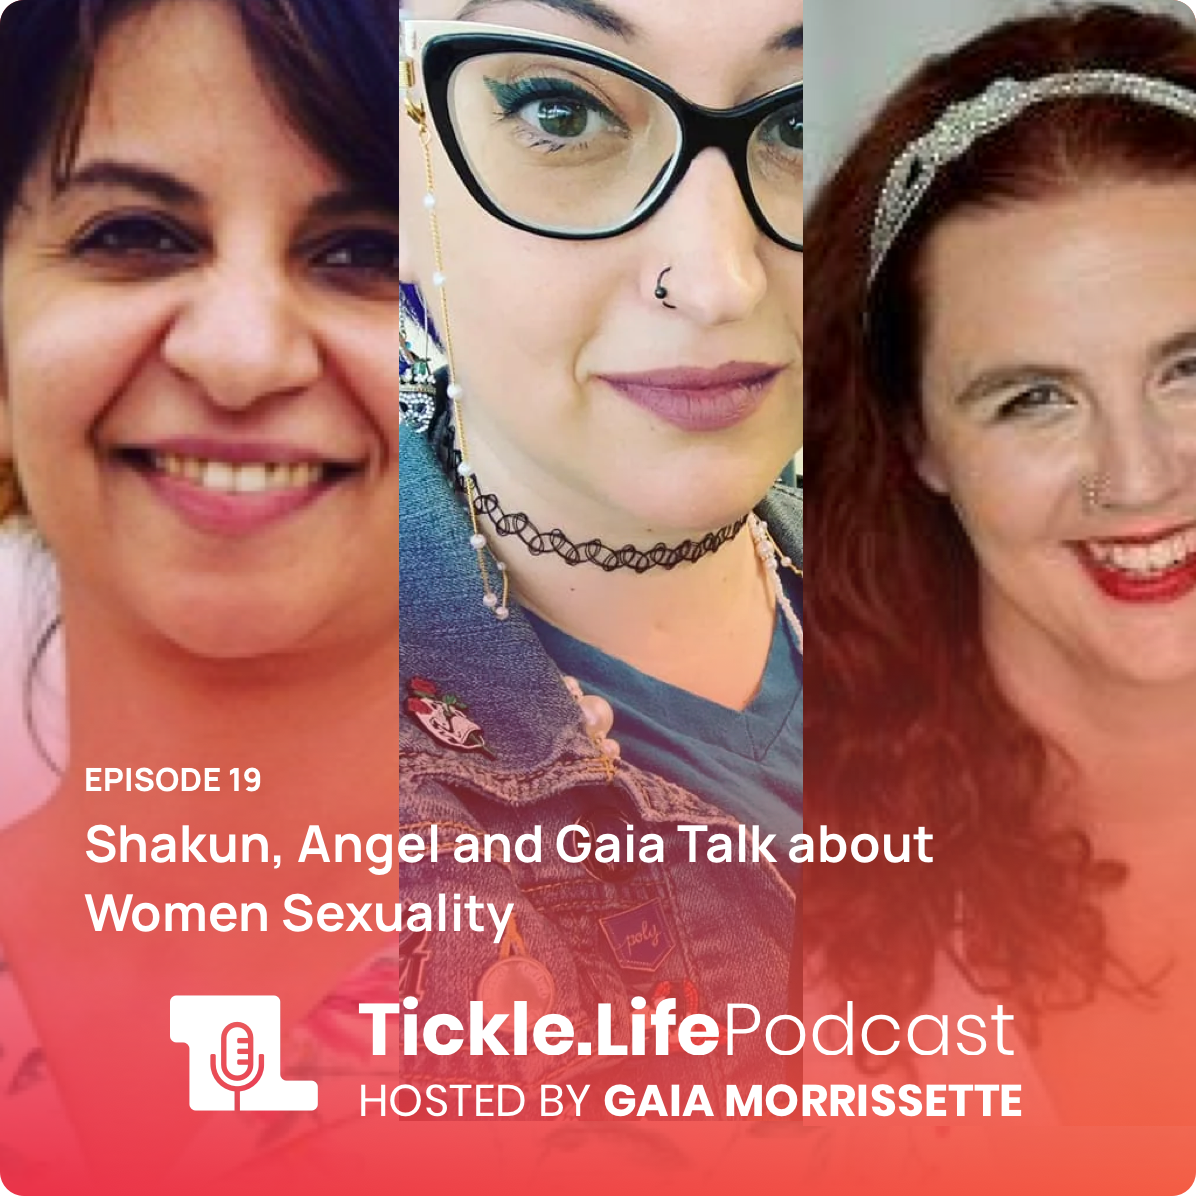 - Shakun, Angel and Gaia Talk about Women Sexuality